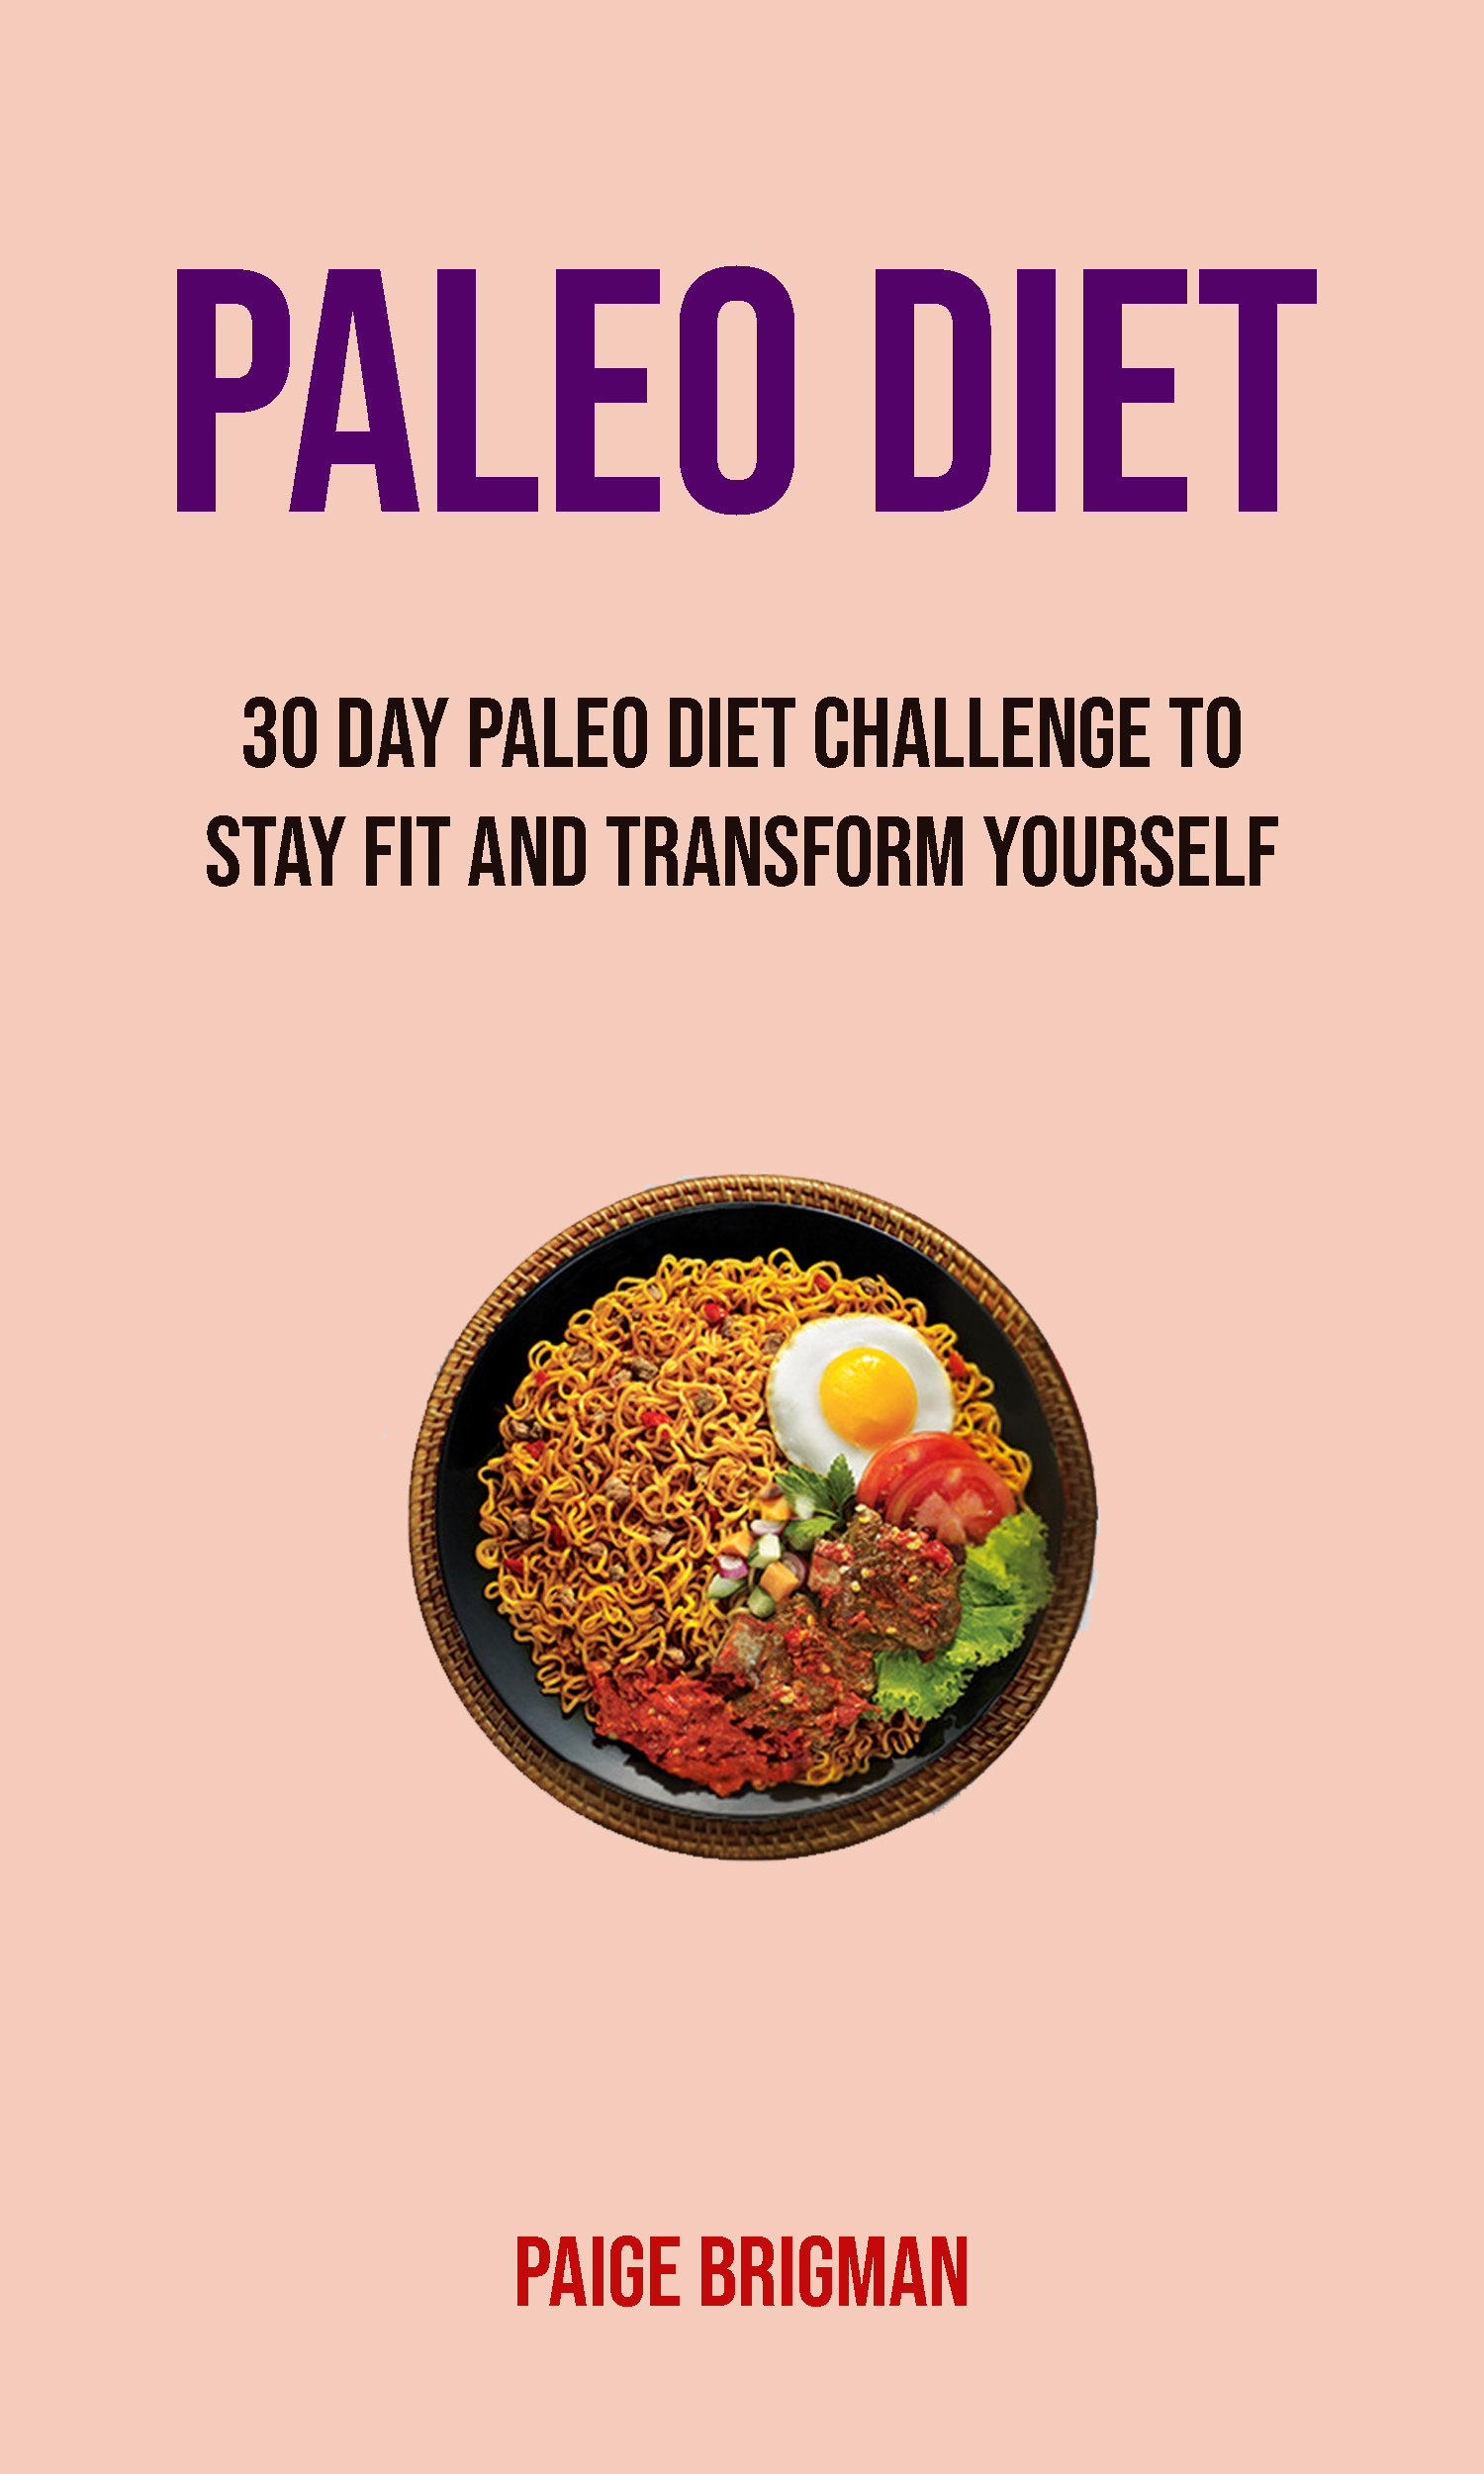 Paleo diet: 30 day paleo diet challenge to stay fit and transform yourself